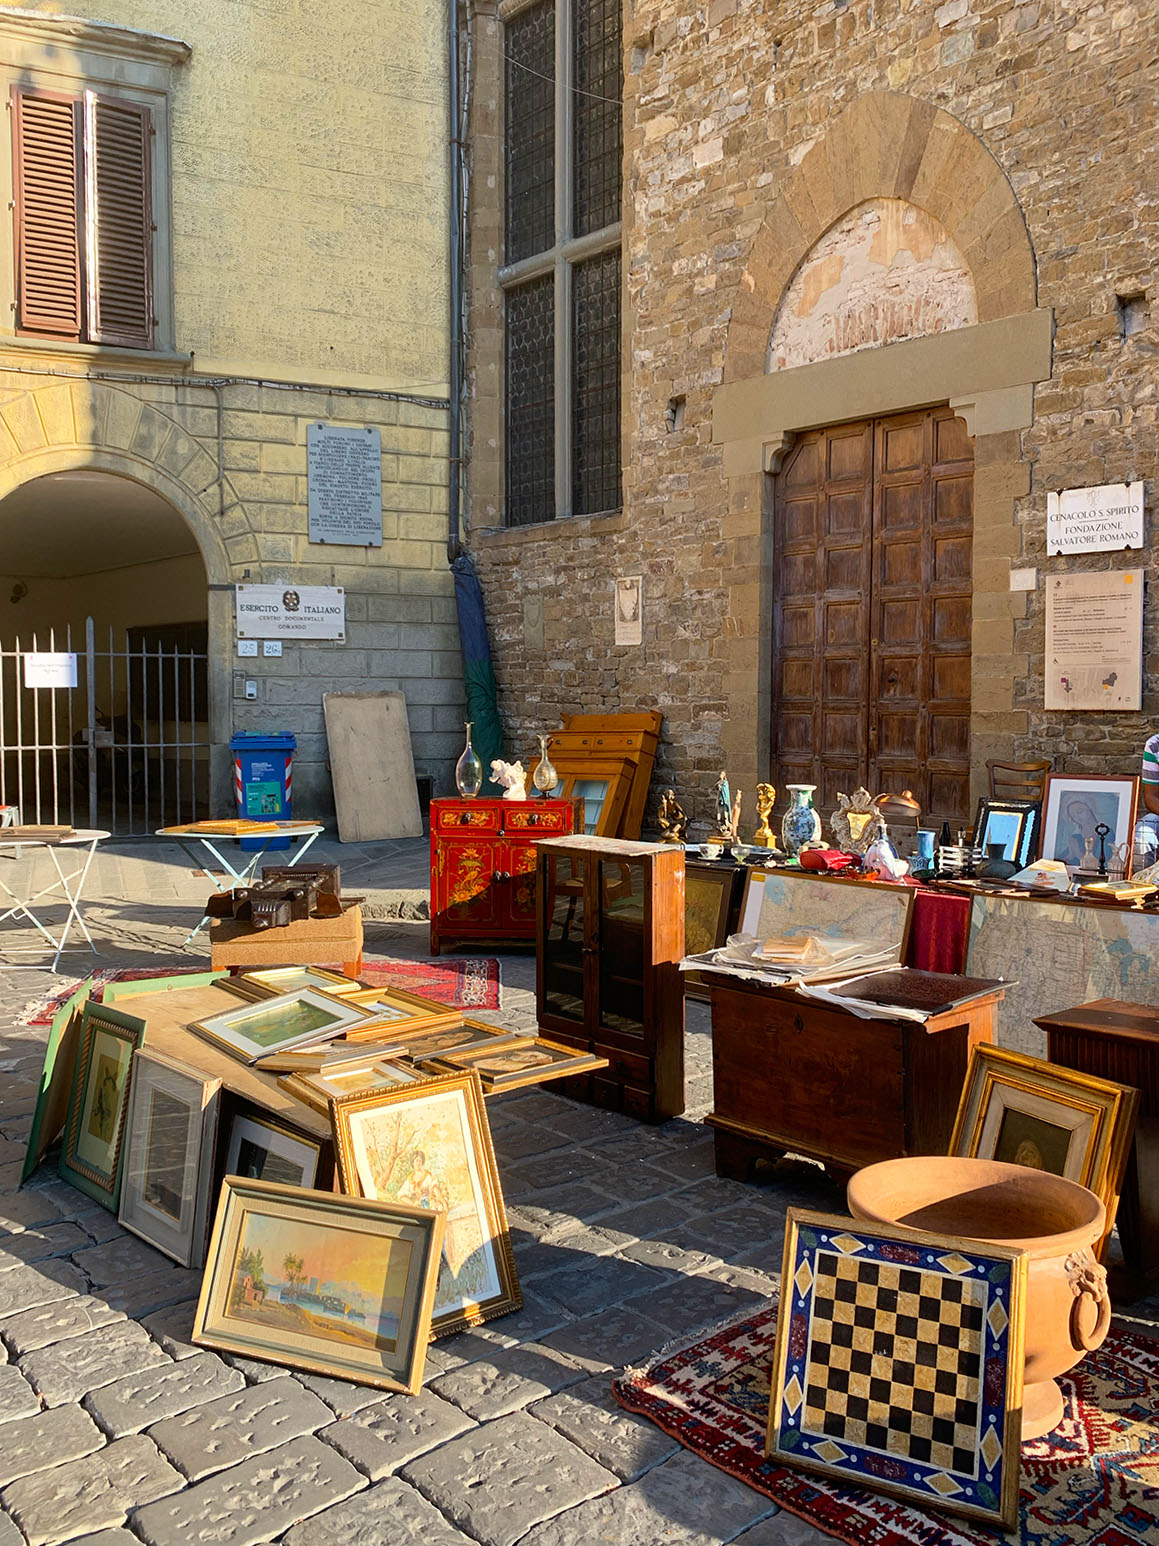 Best thrift markets in Florence, Italy for clothing